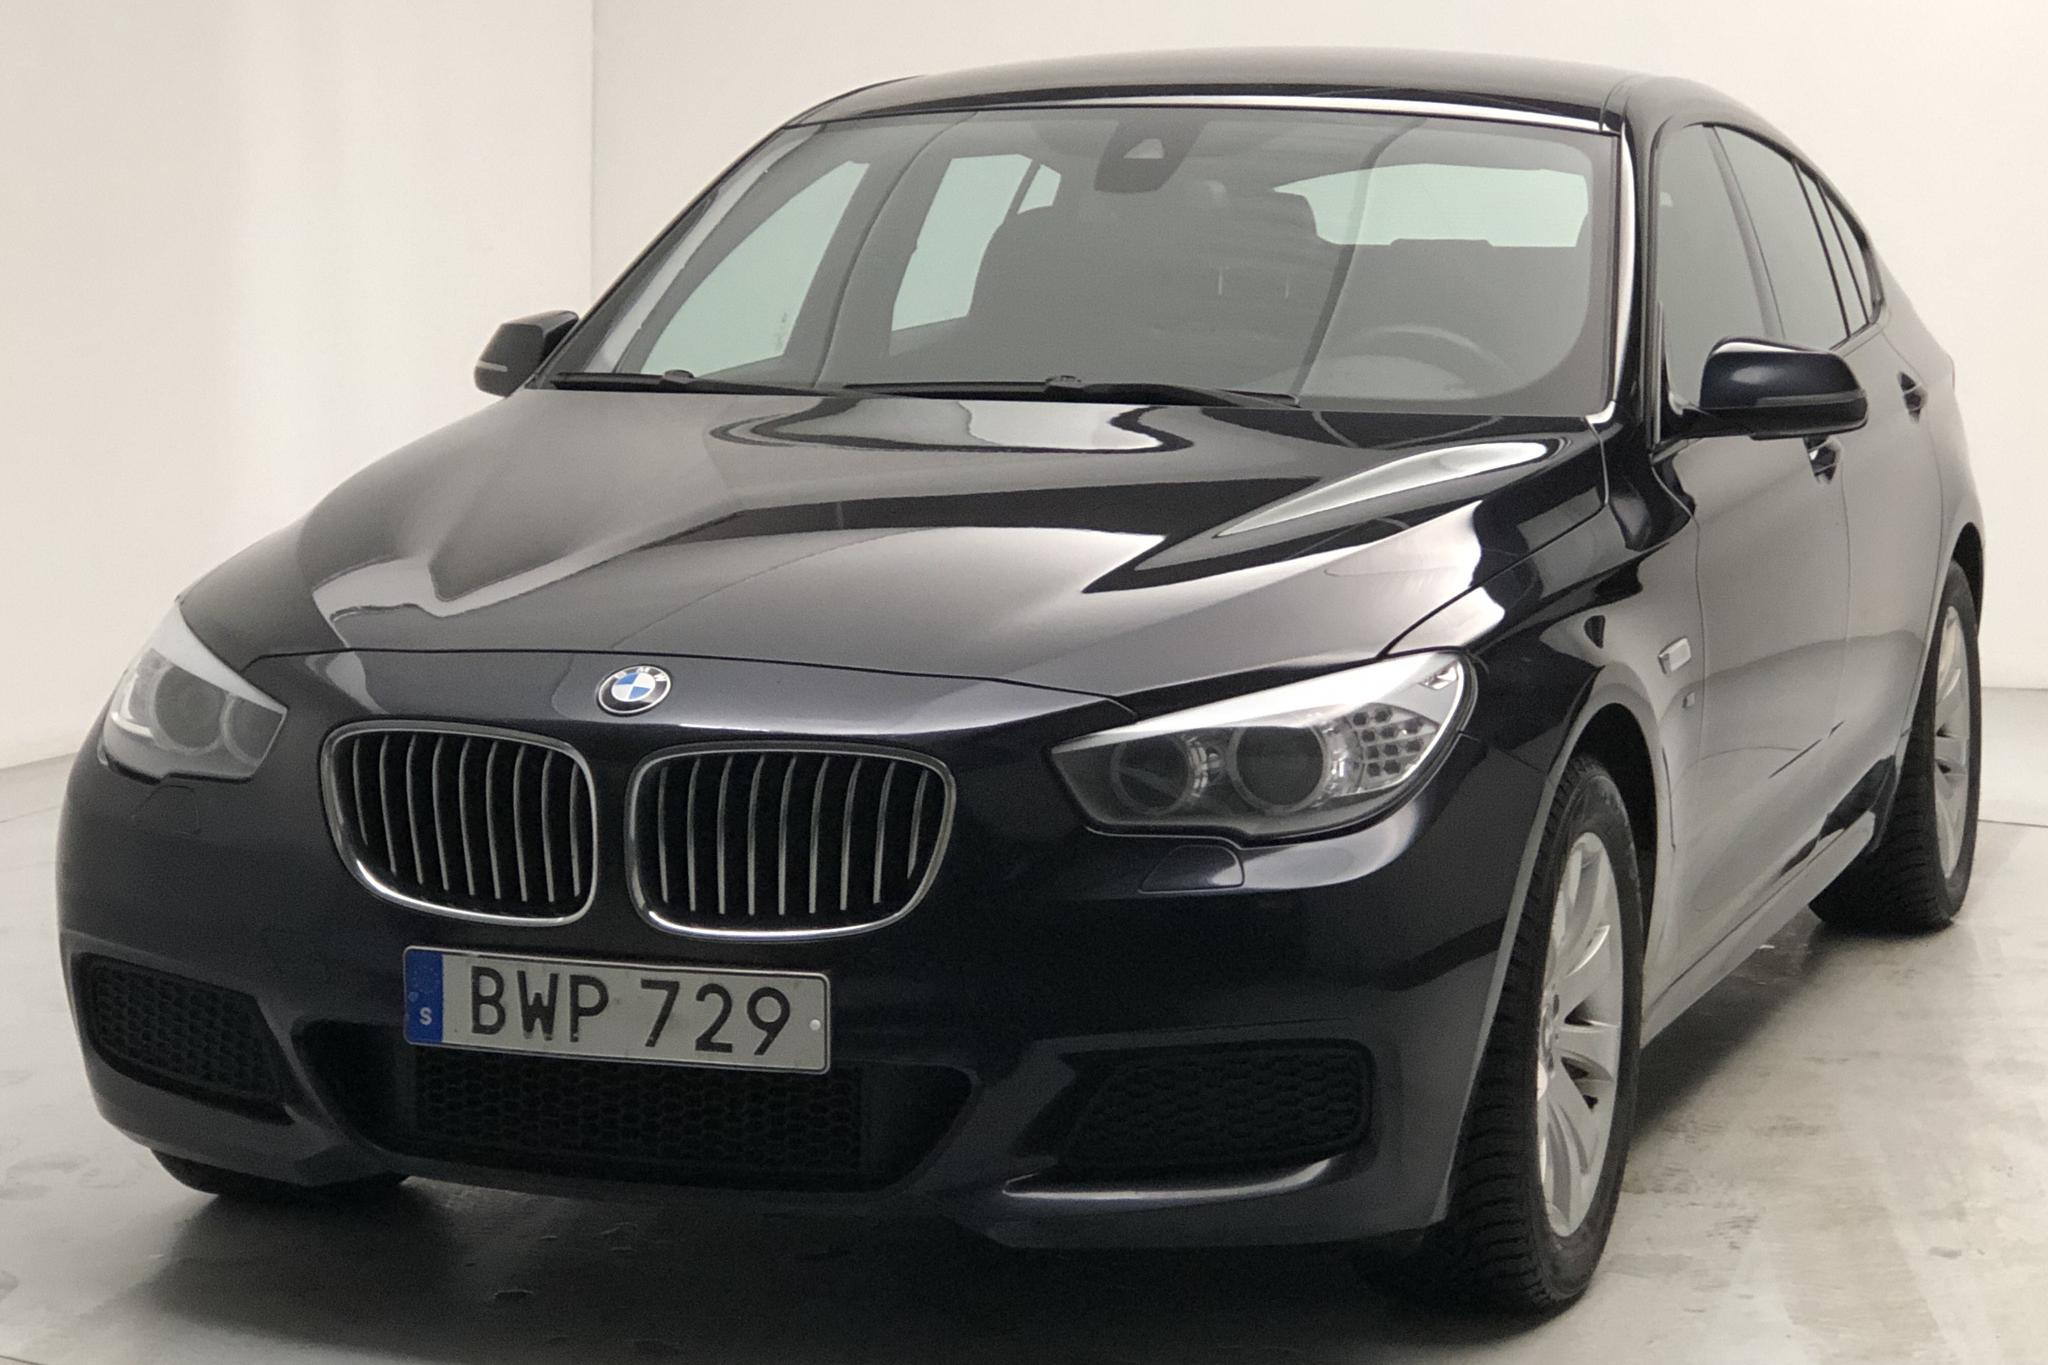 BMW 530d GT xDrive, F07 (258hk) - 170 310 km - Automatic - black - 2015